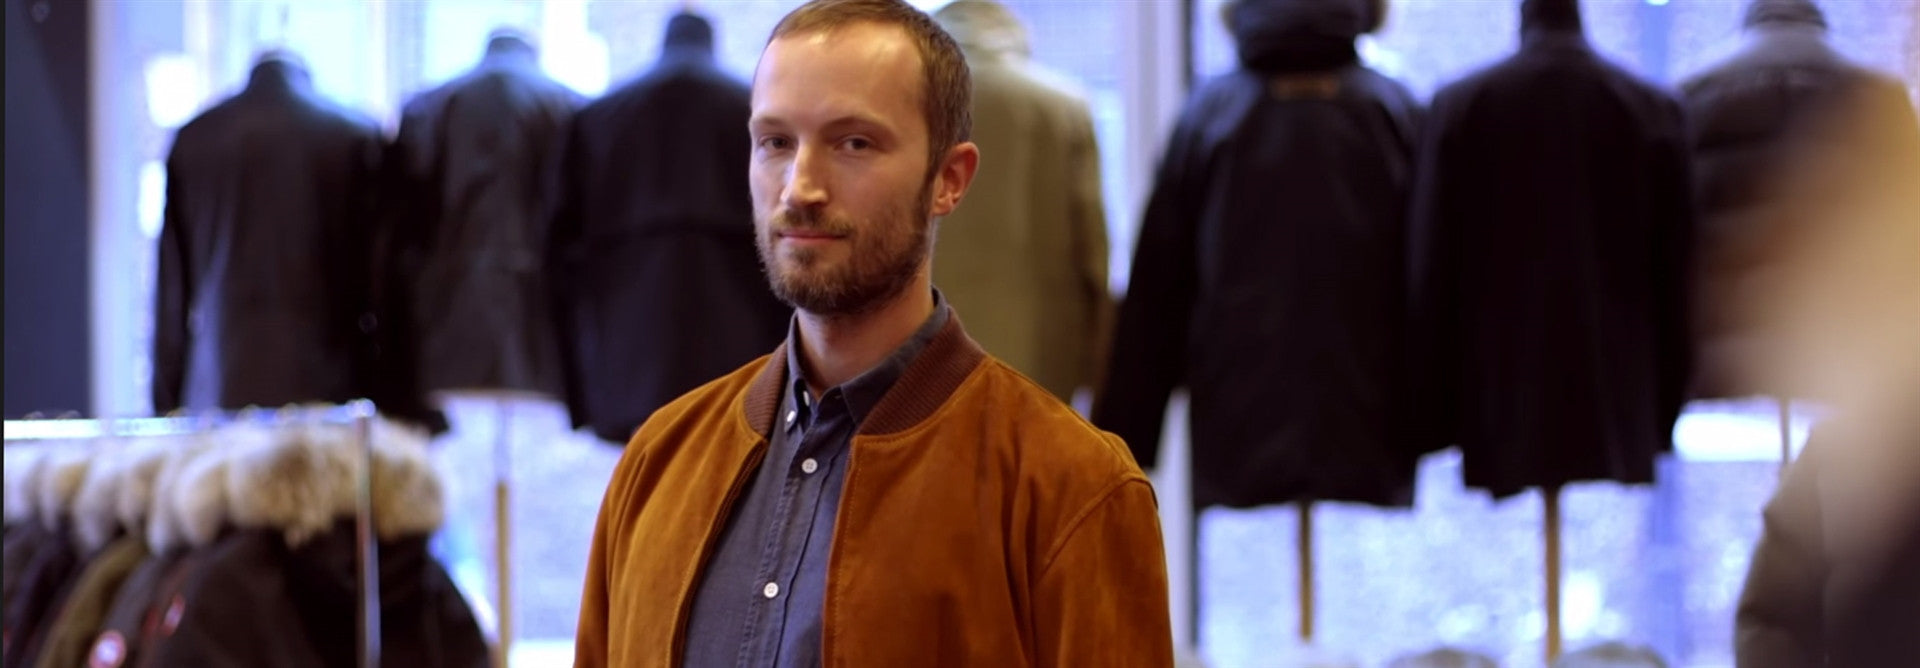 Loka Interview with Philip Browne Menswear